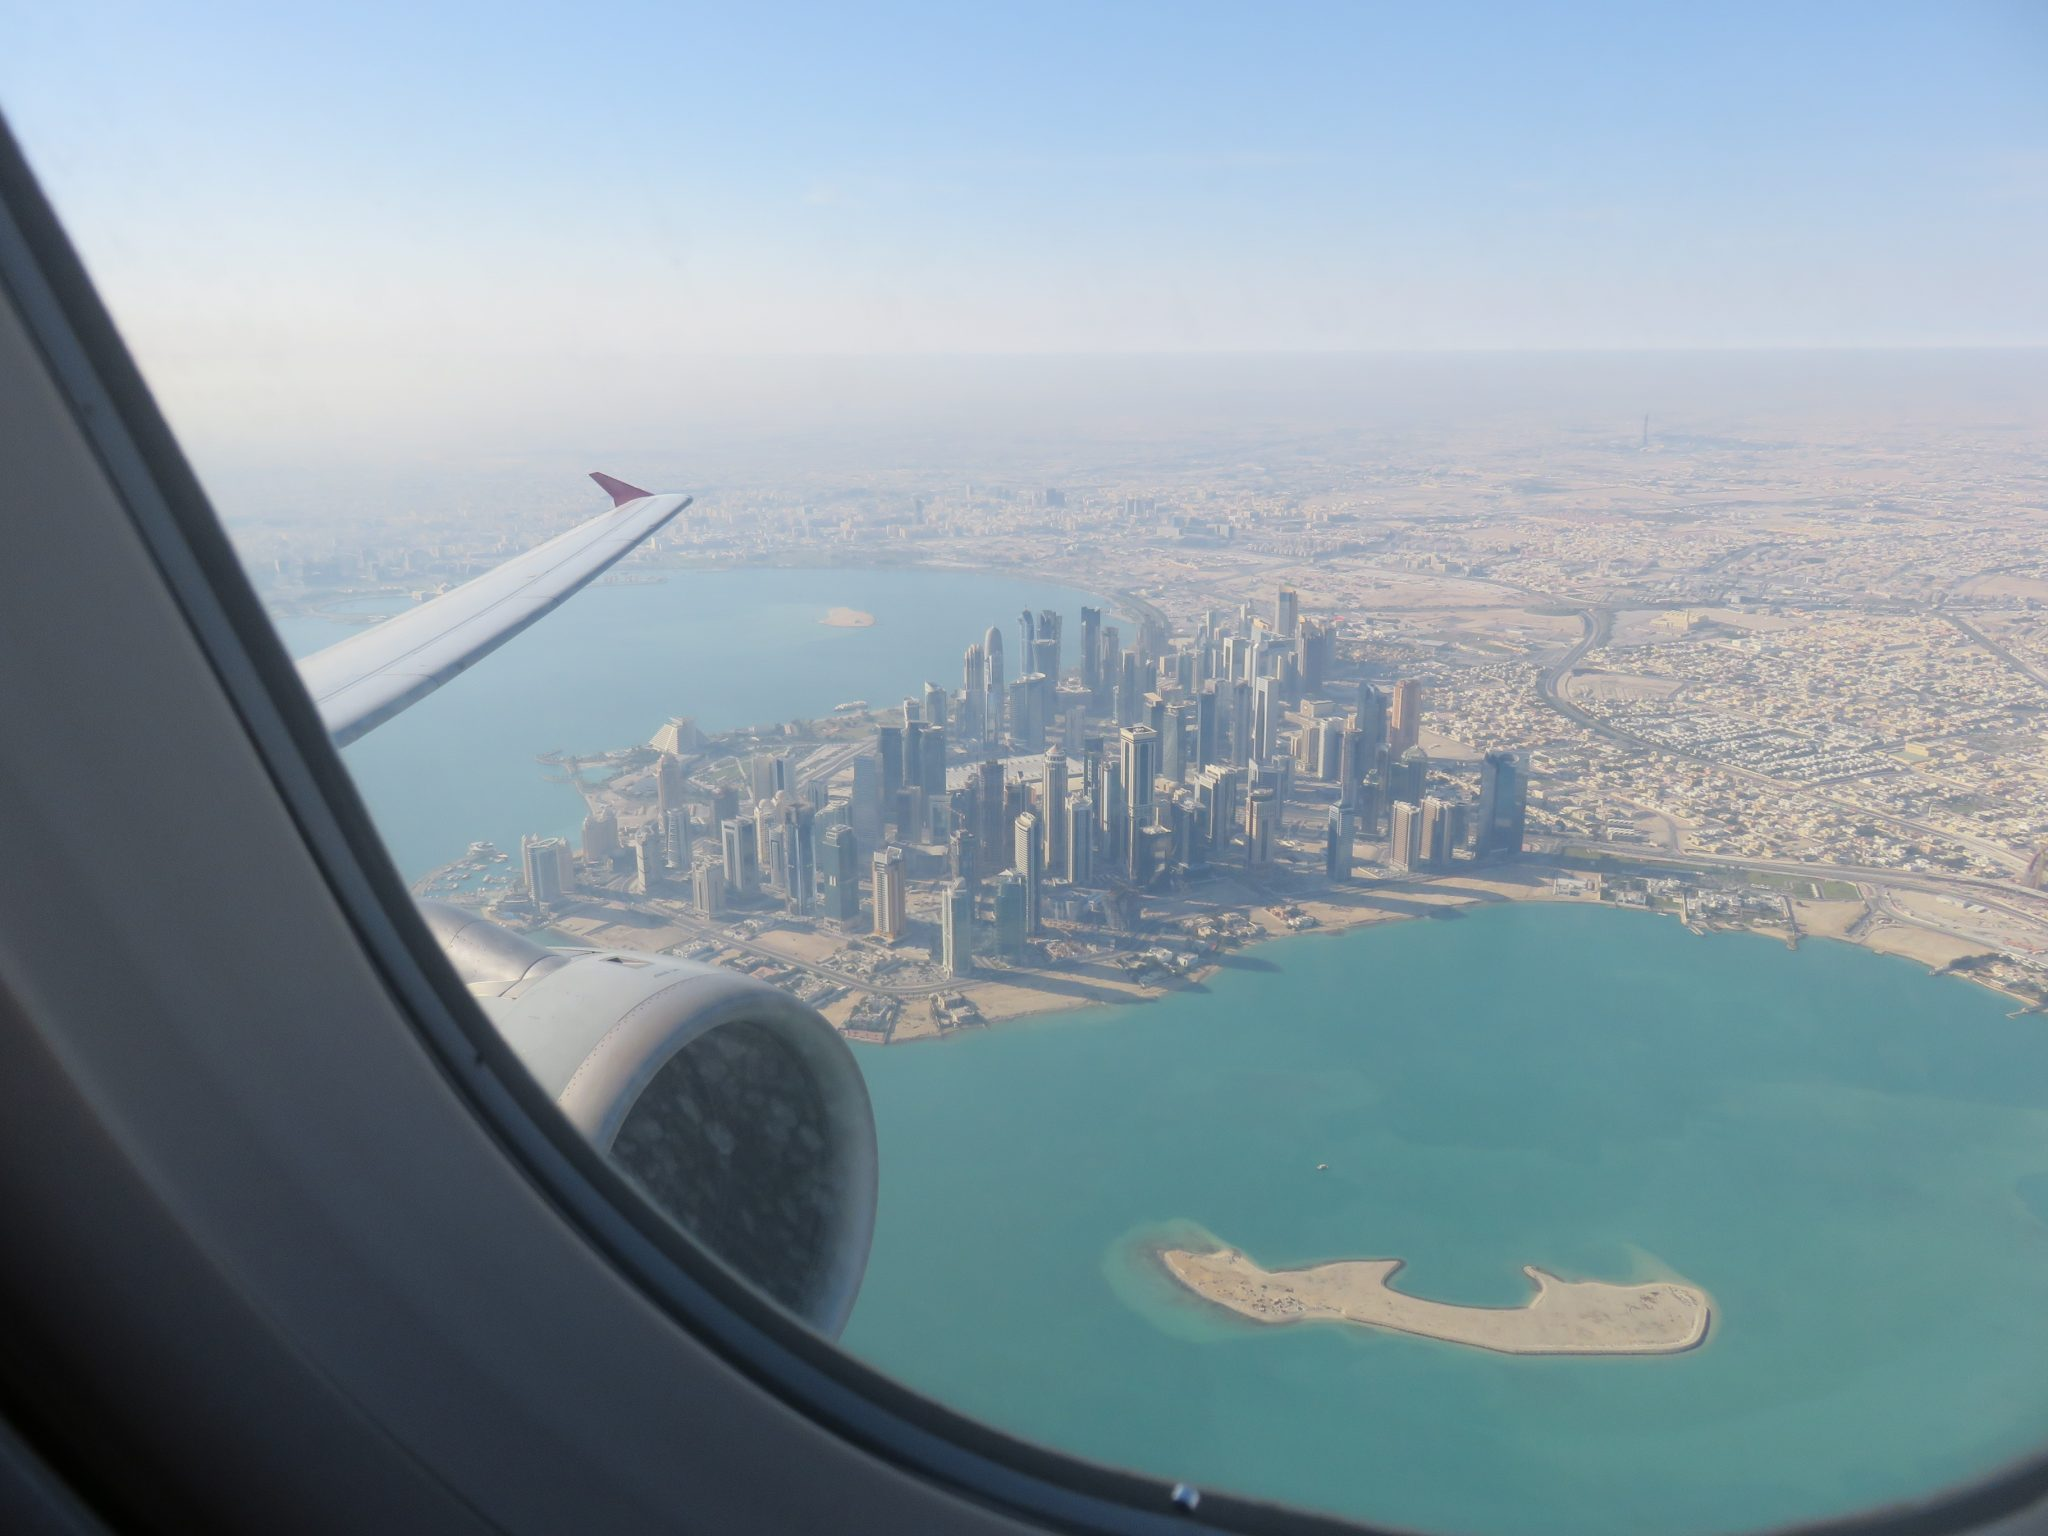 A picture of Doha city from my the window before landing